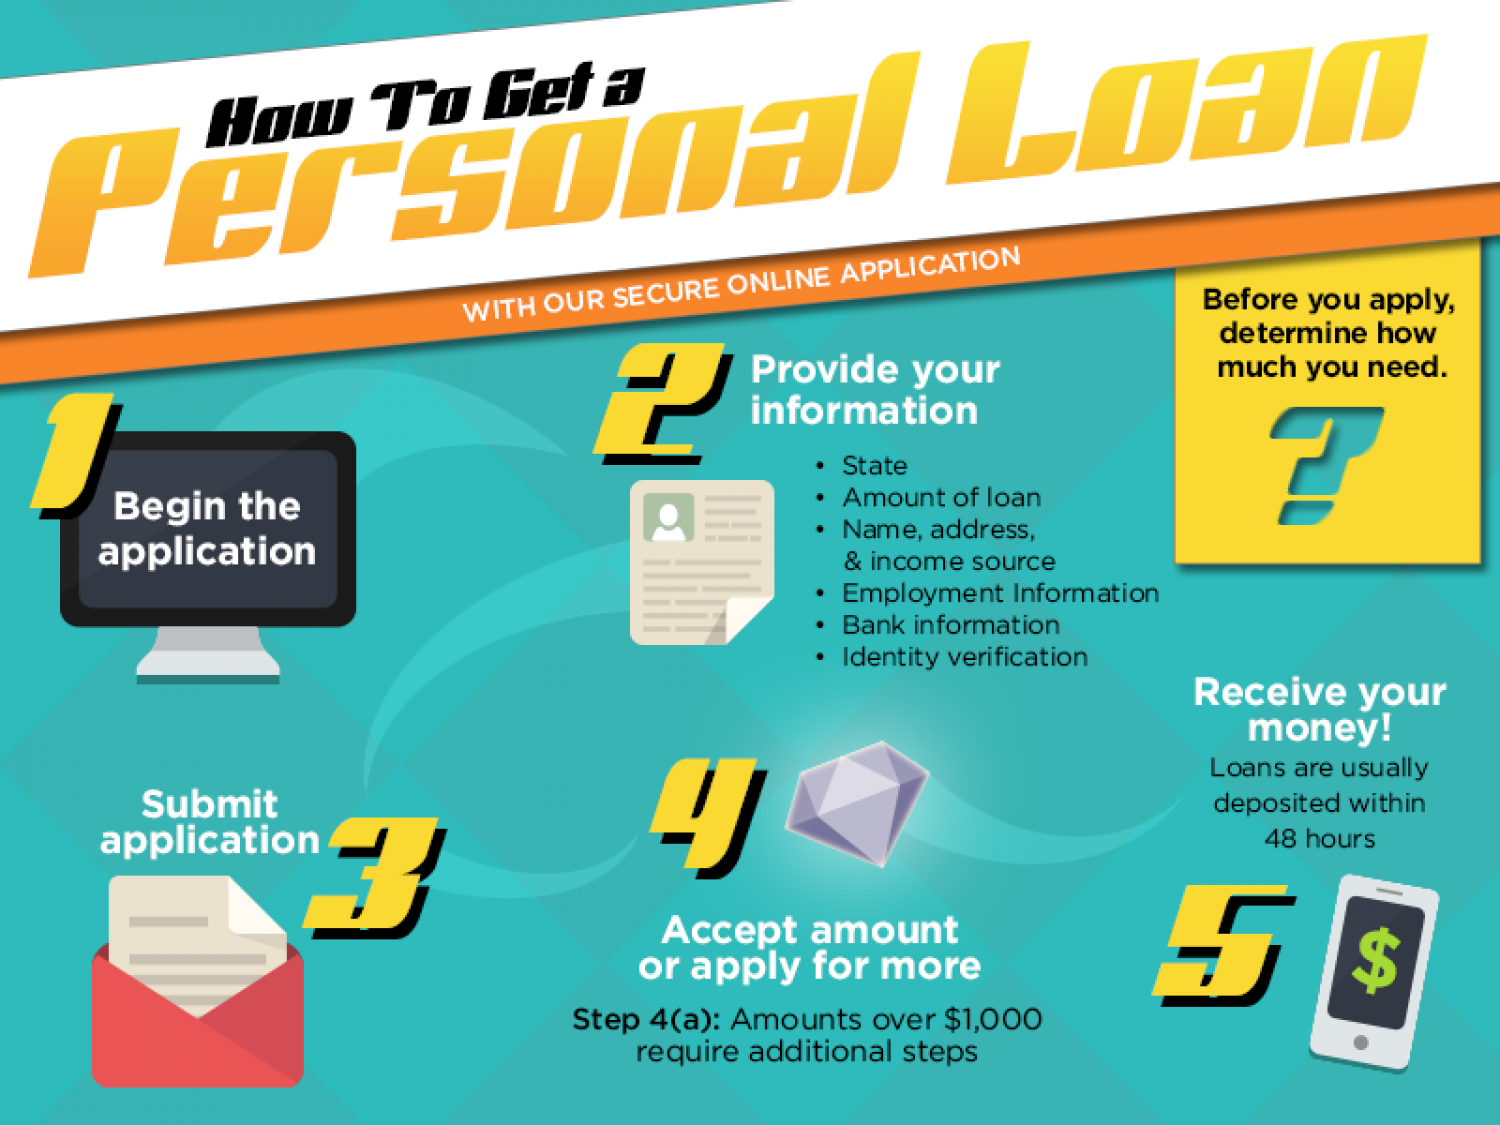 How to Get a Personal Loan Infographic